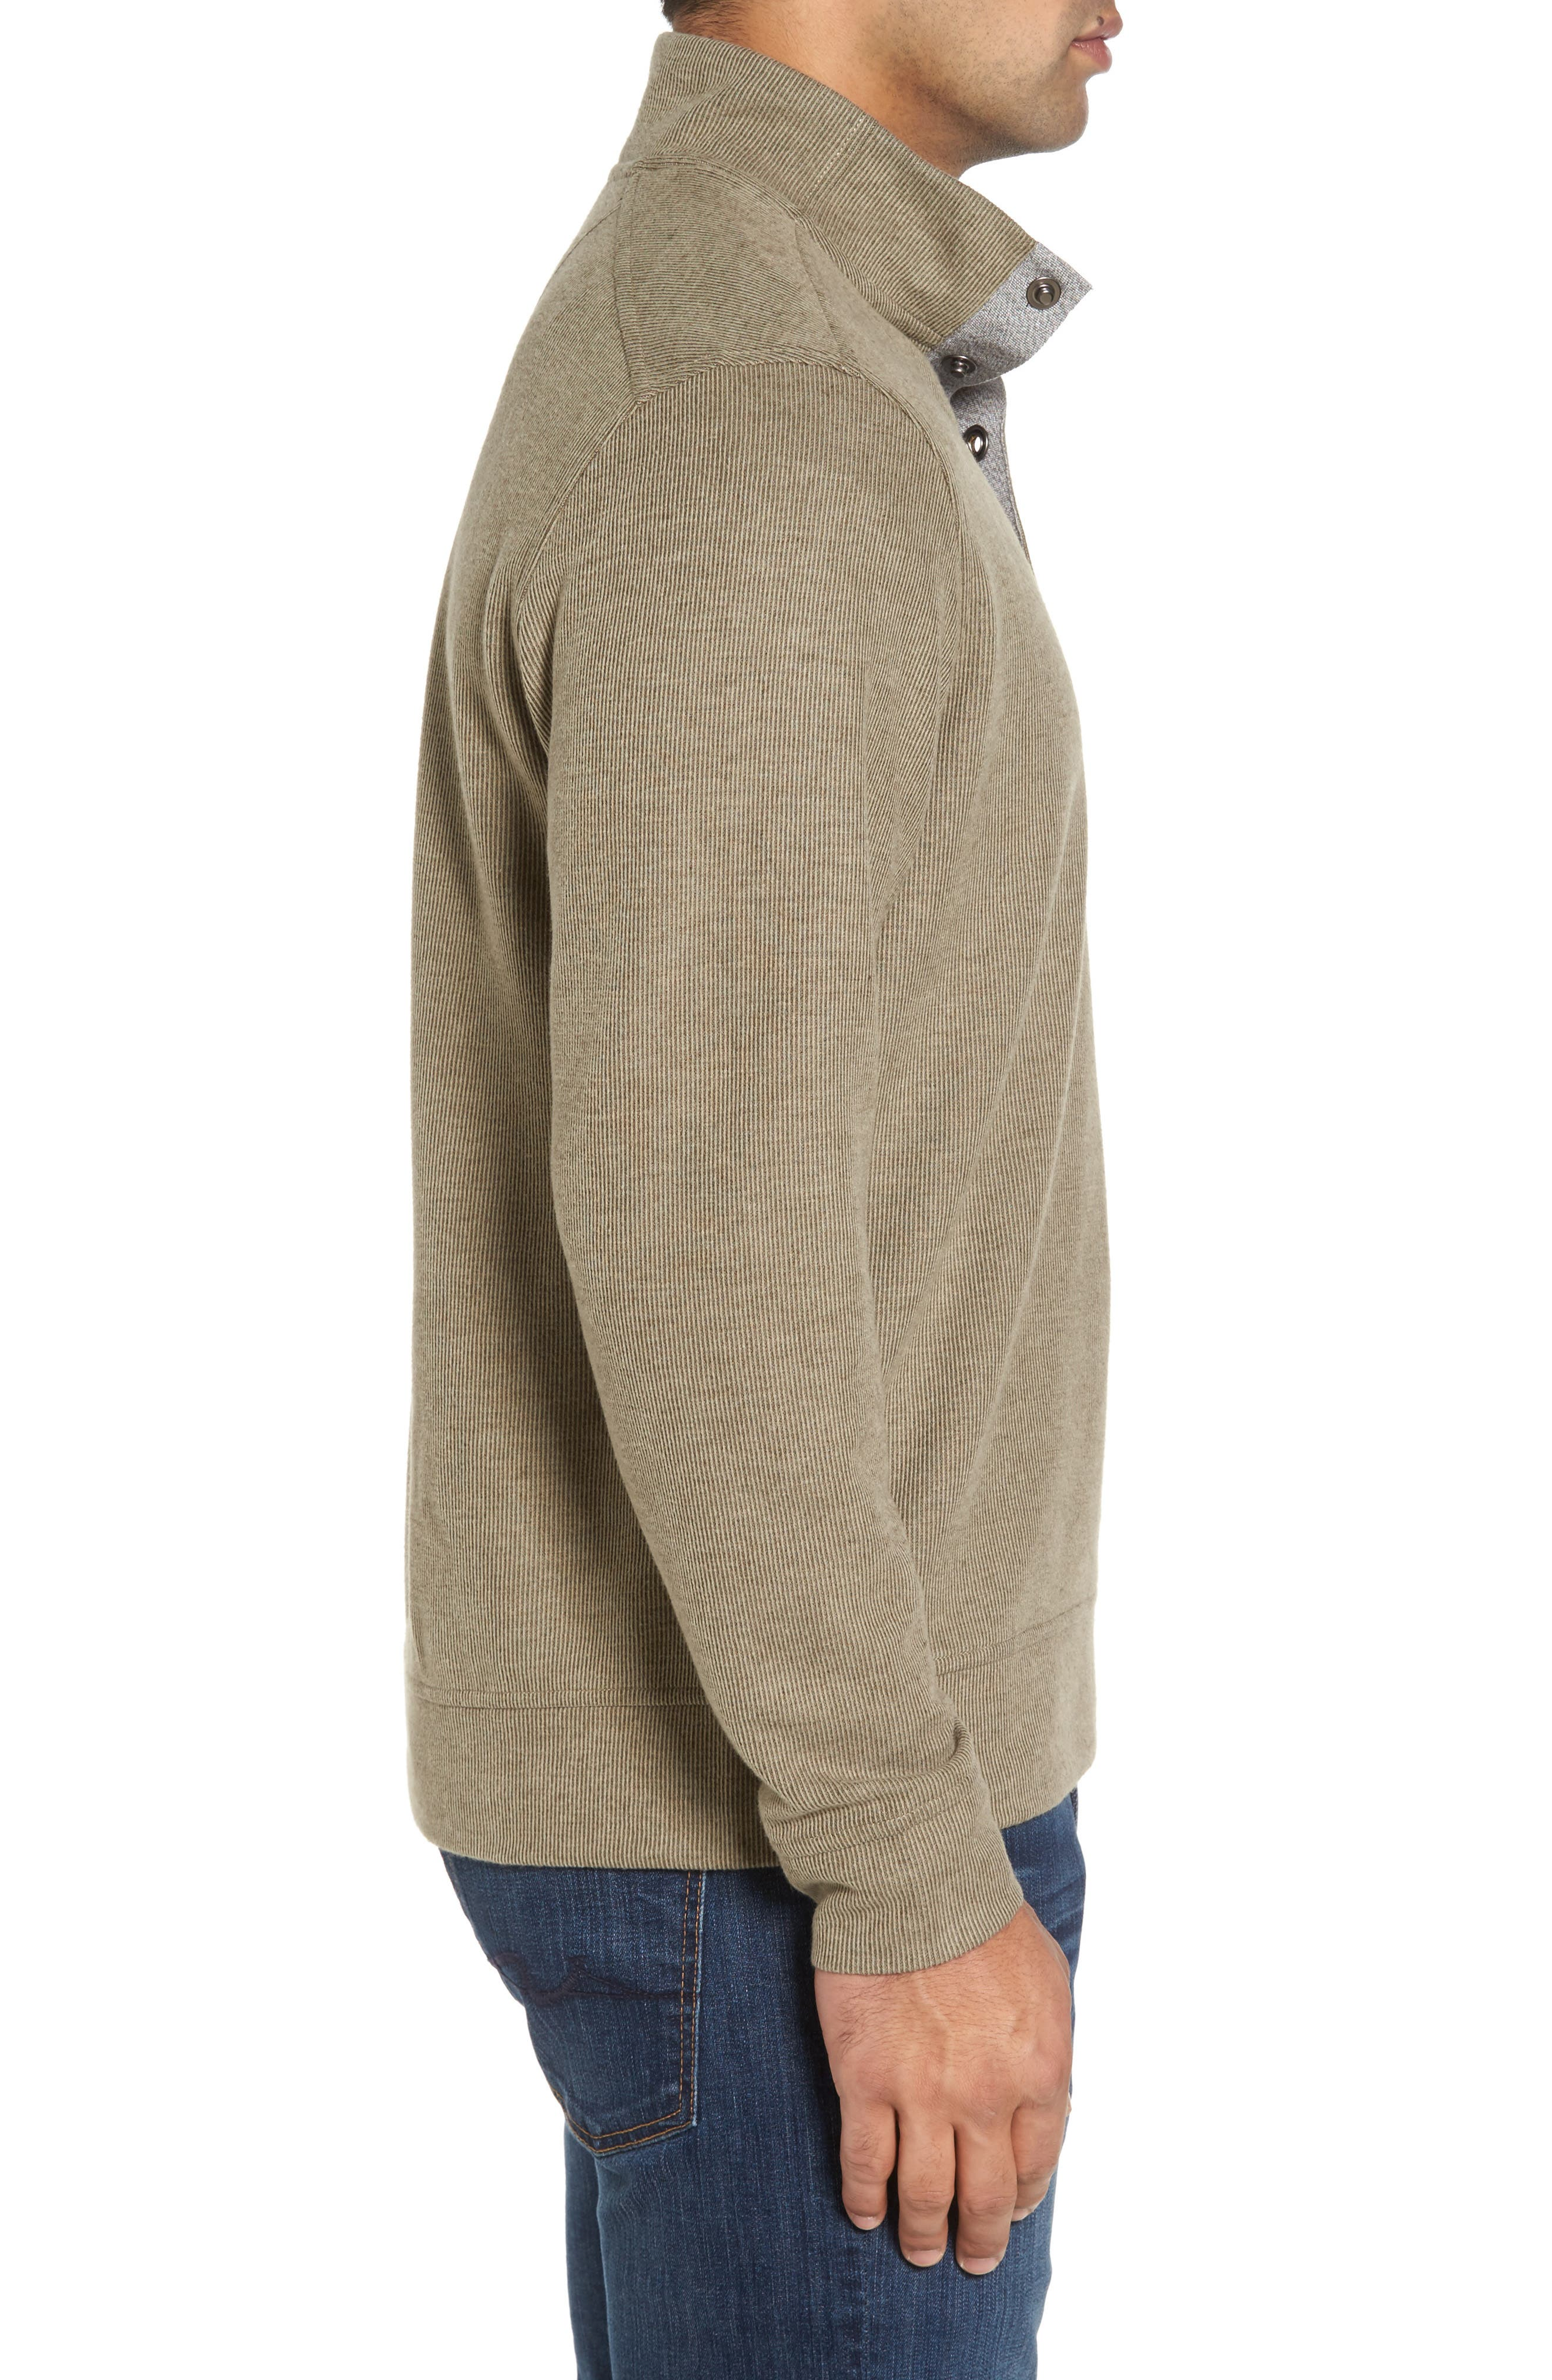 Cold Springs Snap Mock Neck Sweater,                             Alternate thumbnail 15, color,